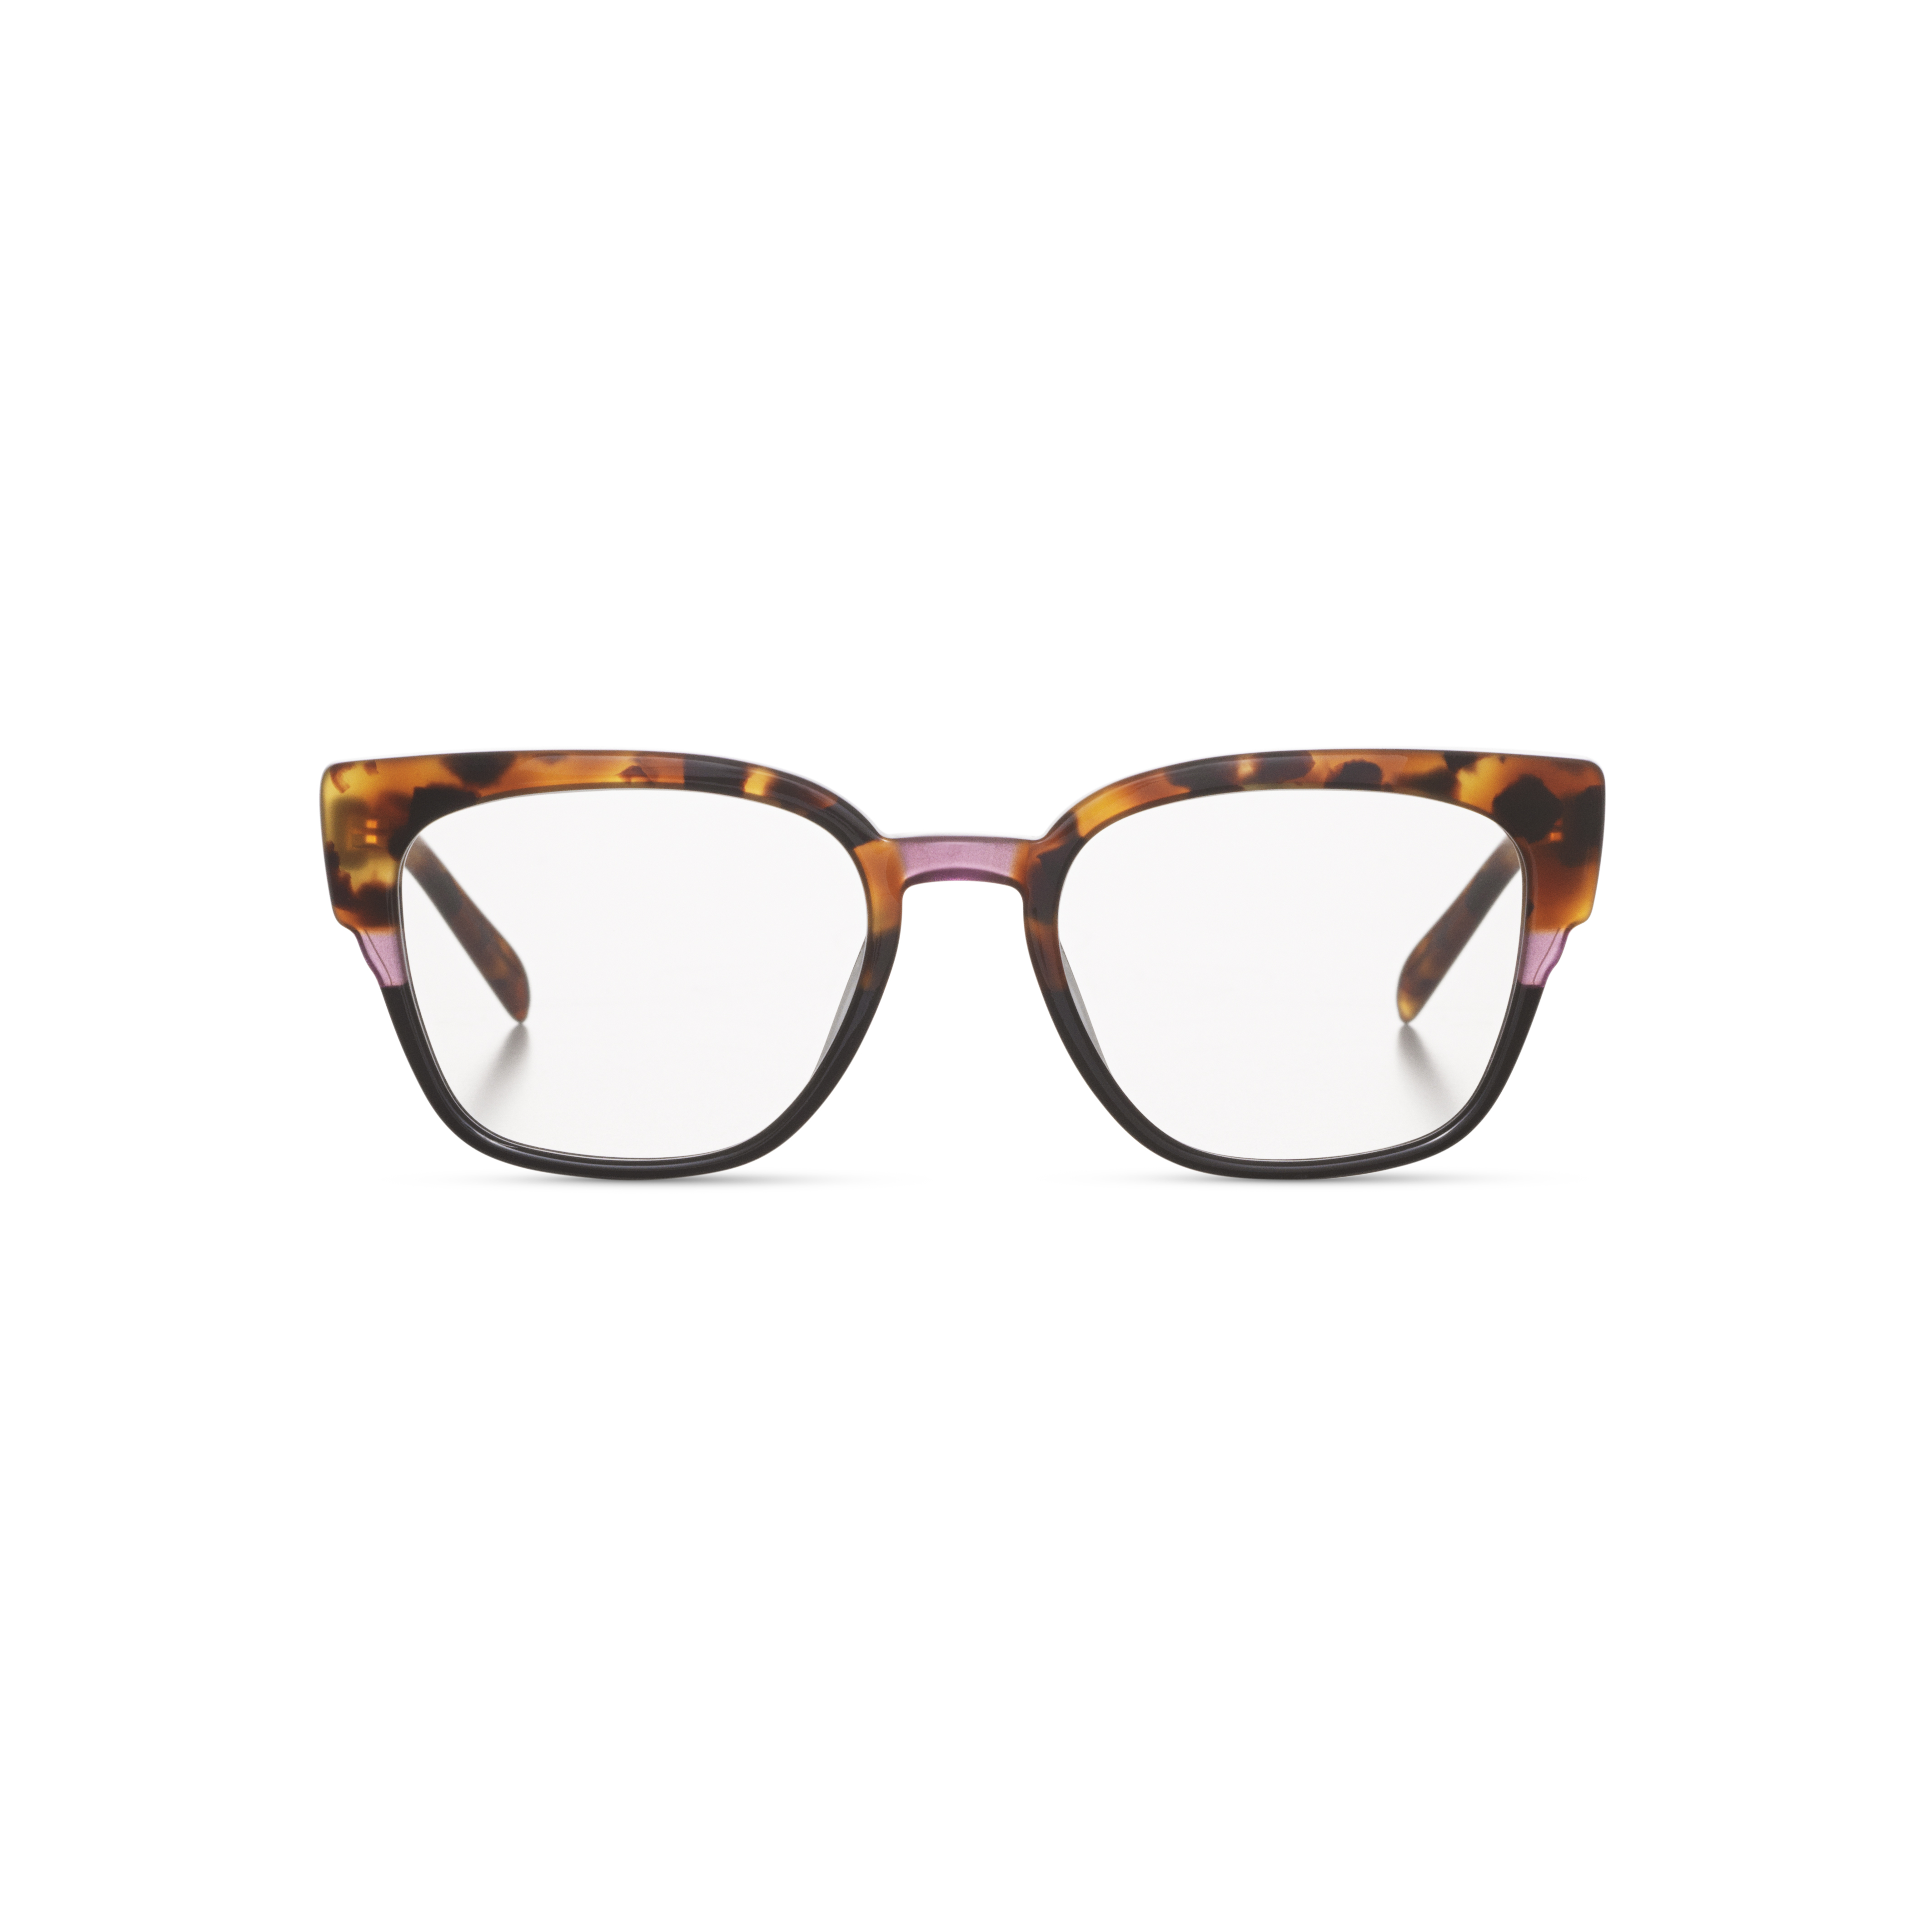 216 Rgreen The New Acetate Spectr